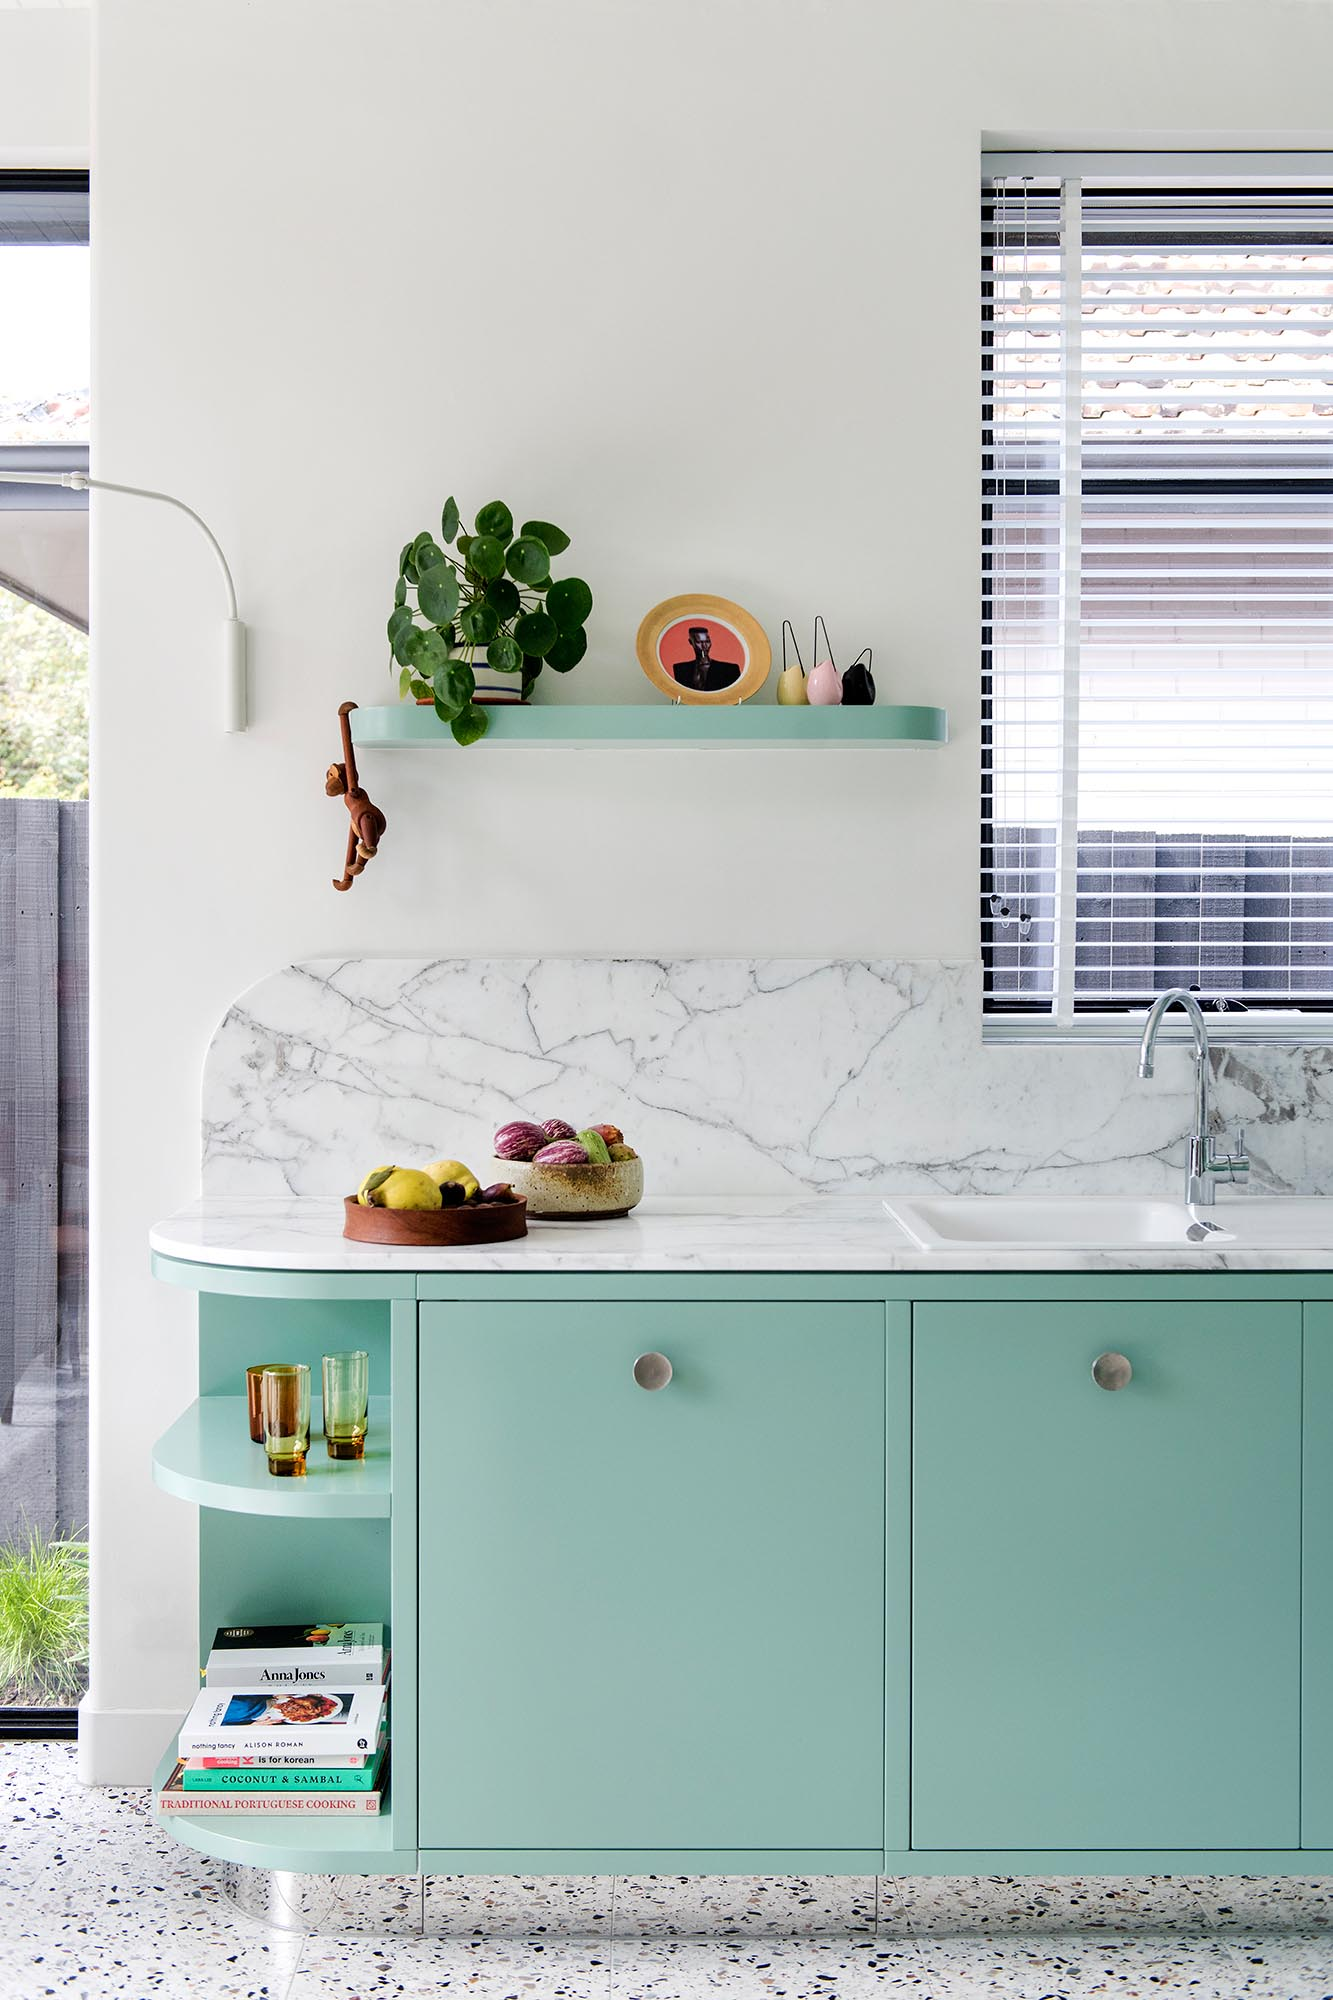 A modern mint green kitchen with Calacatta Statuario countertops, Terrazzo flooring, and white walls and ceiling.